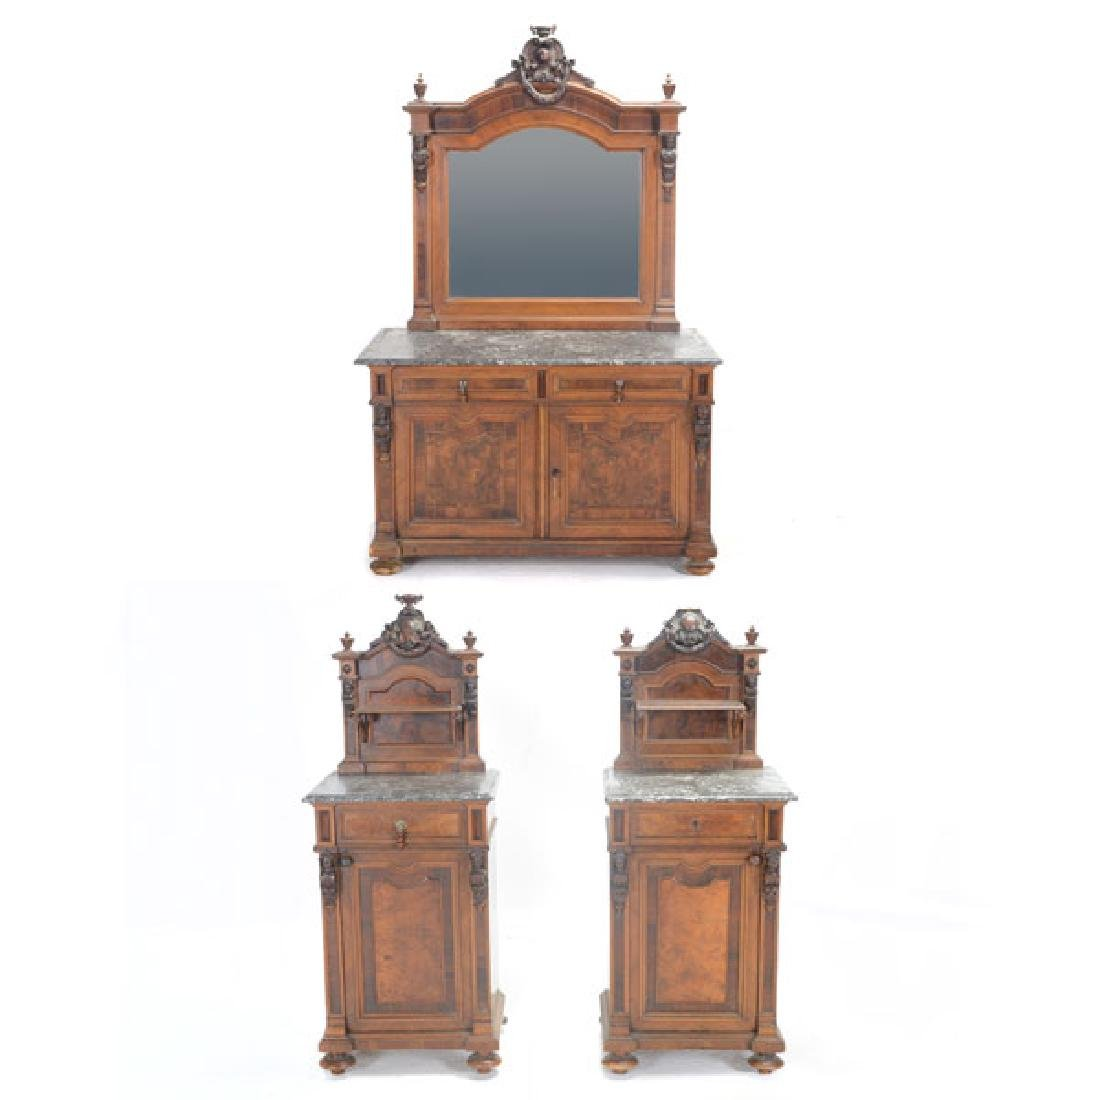 Pair of Rococo Revival Bedside Tables with Commode